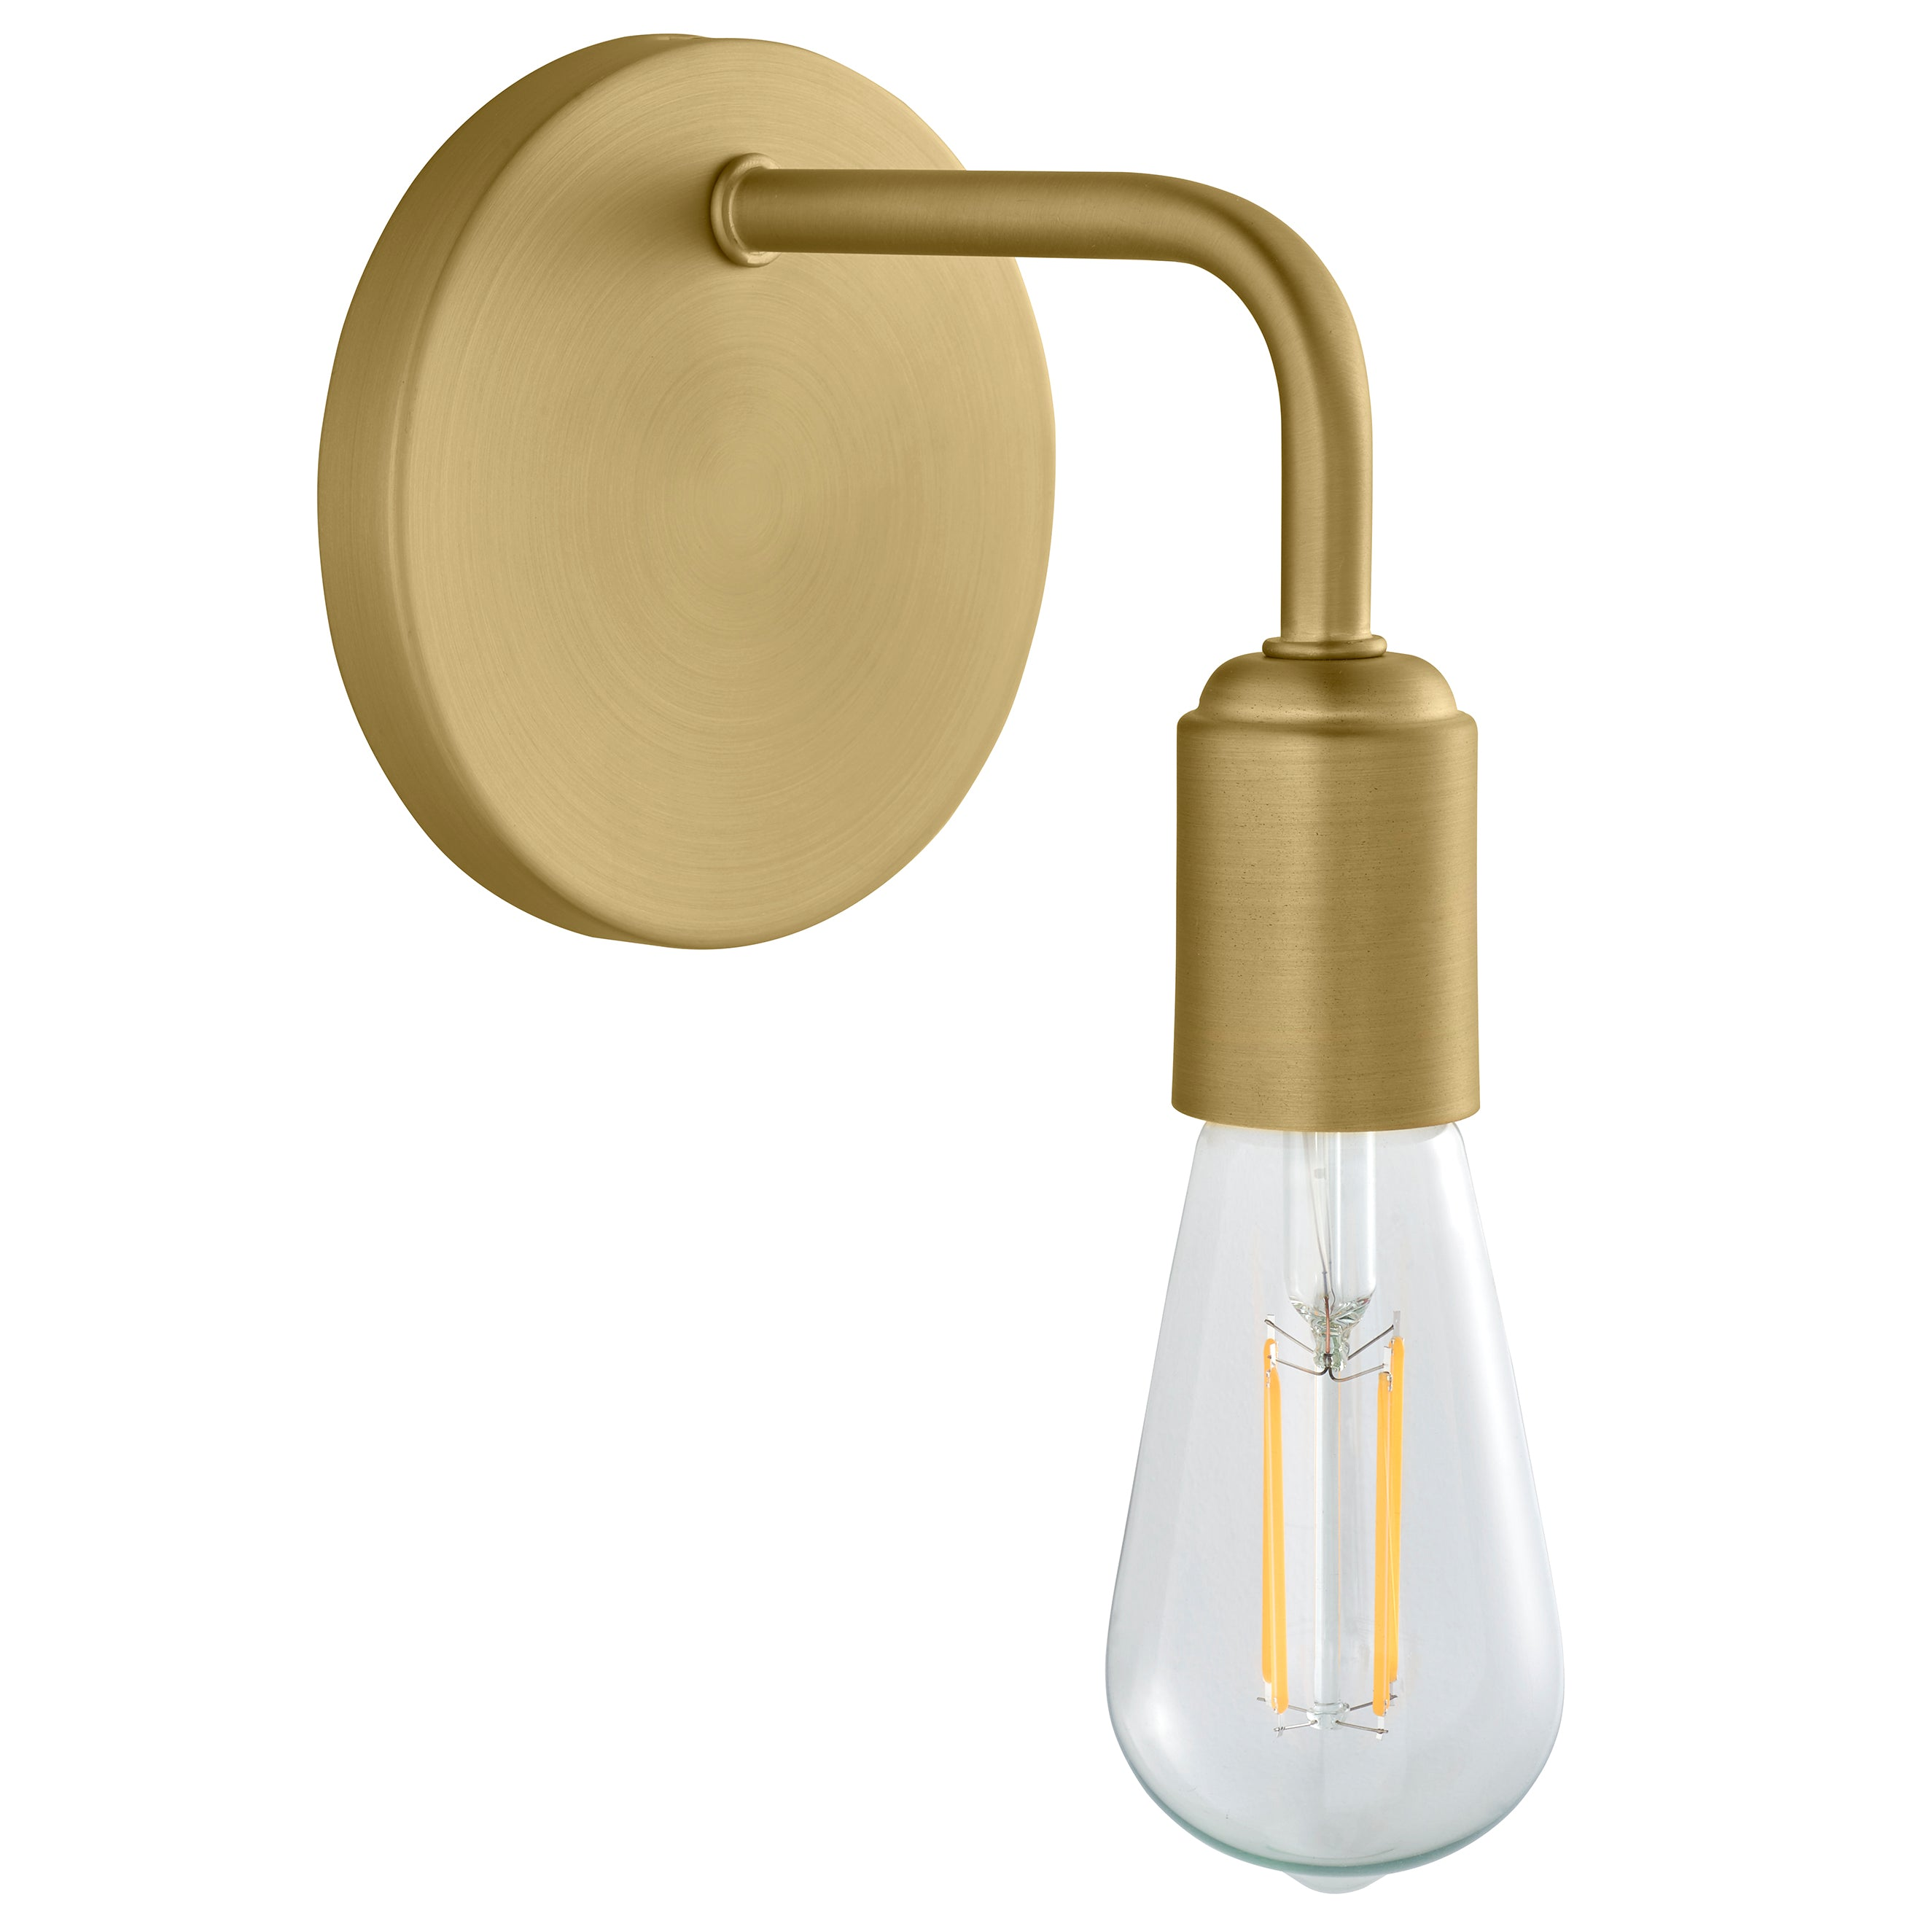 Trasso Hardwired Wall Sconce